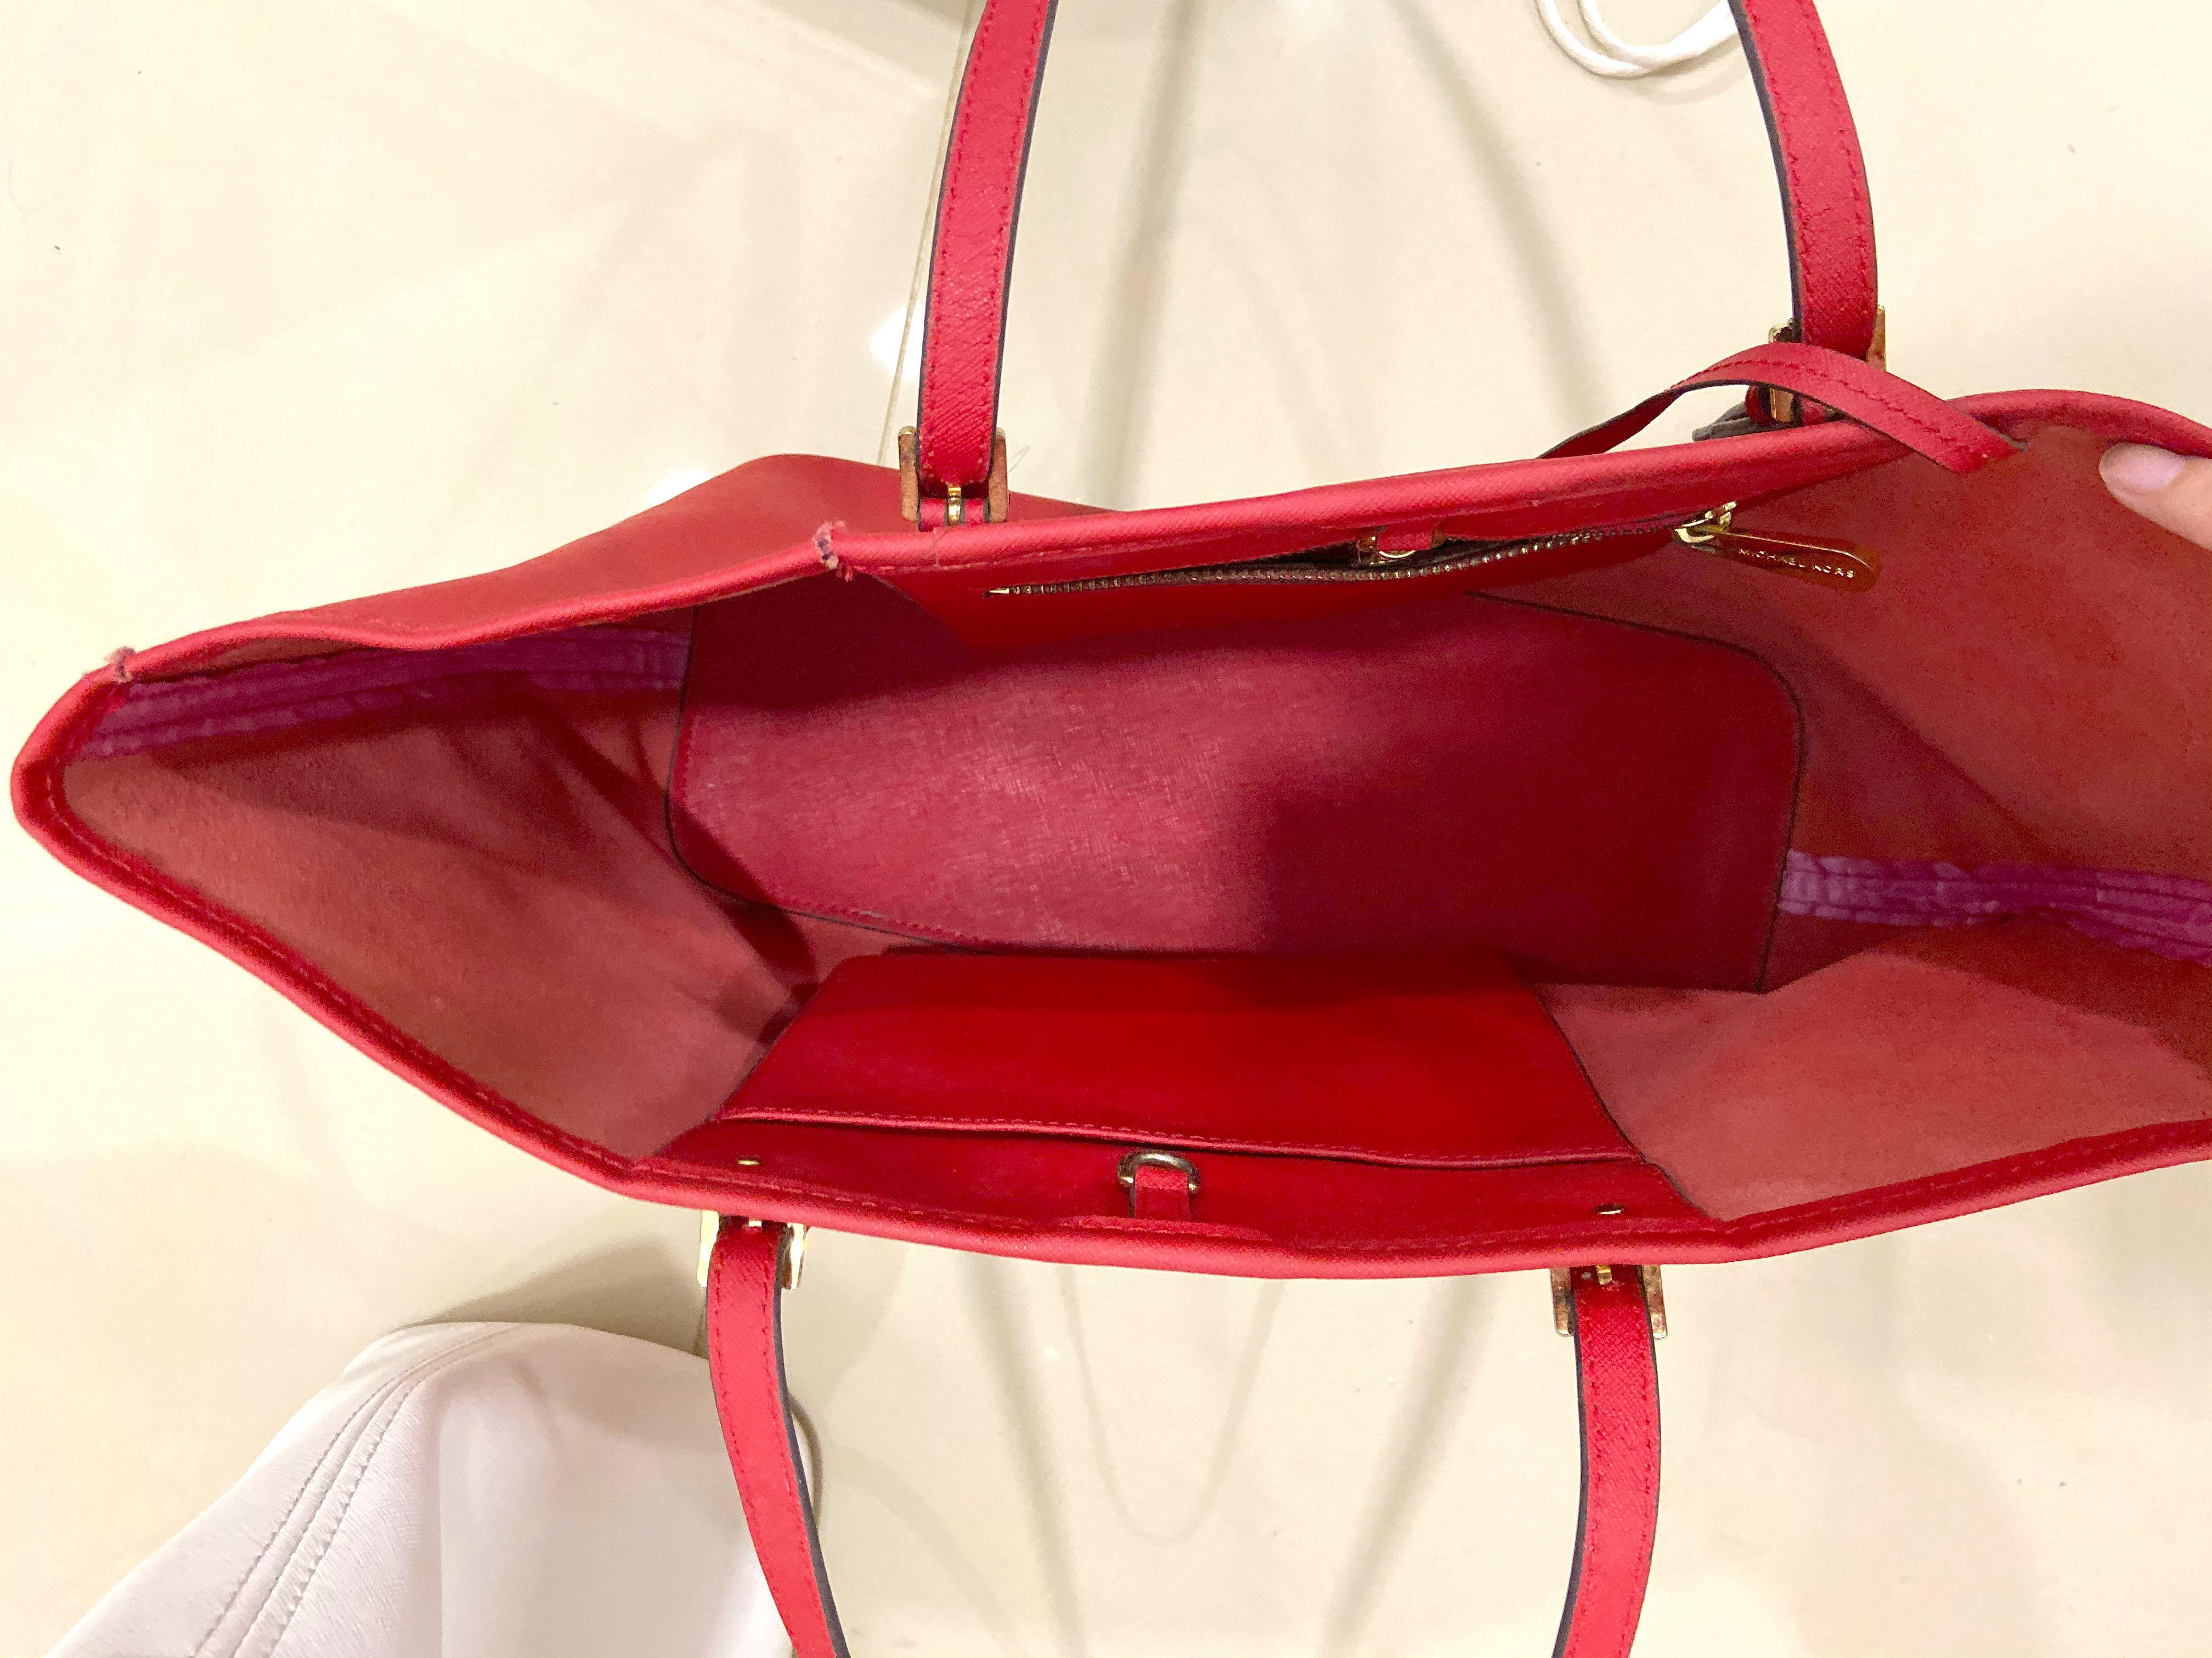 Authentic Michael kors tote bag (red)